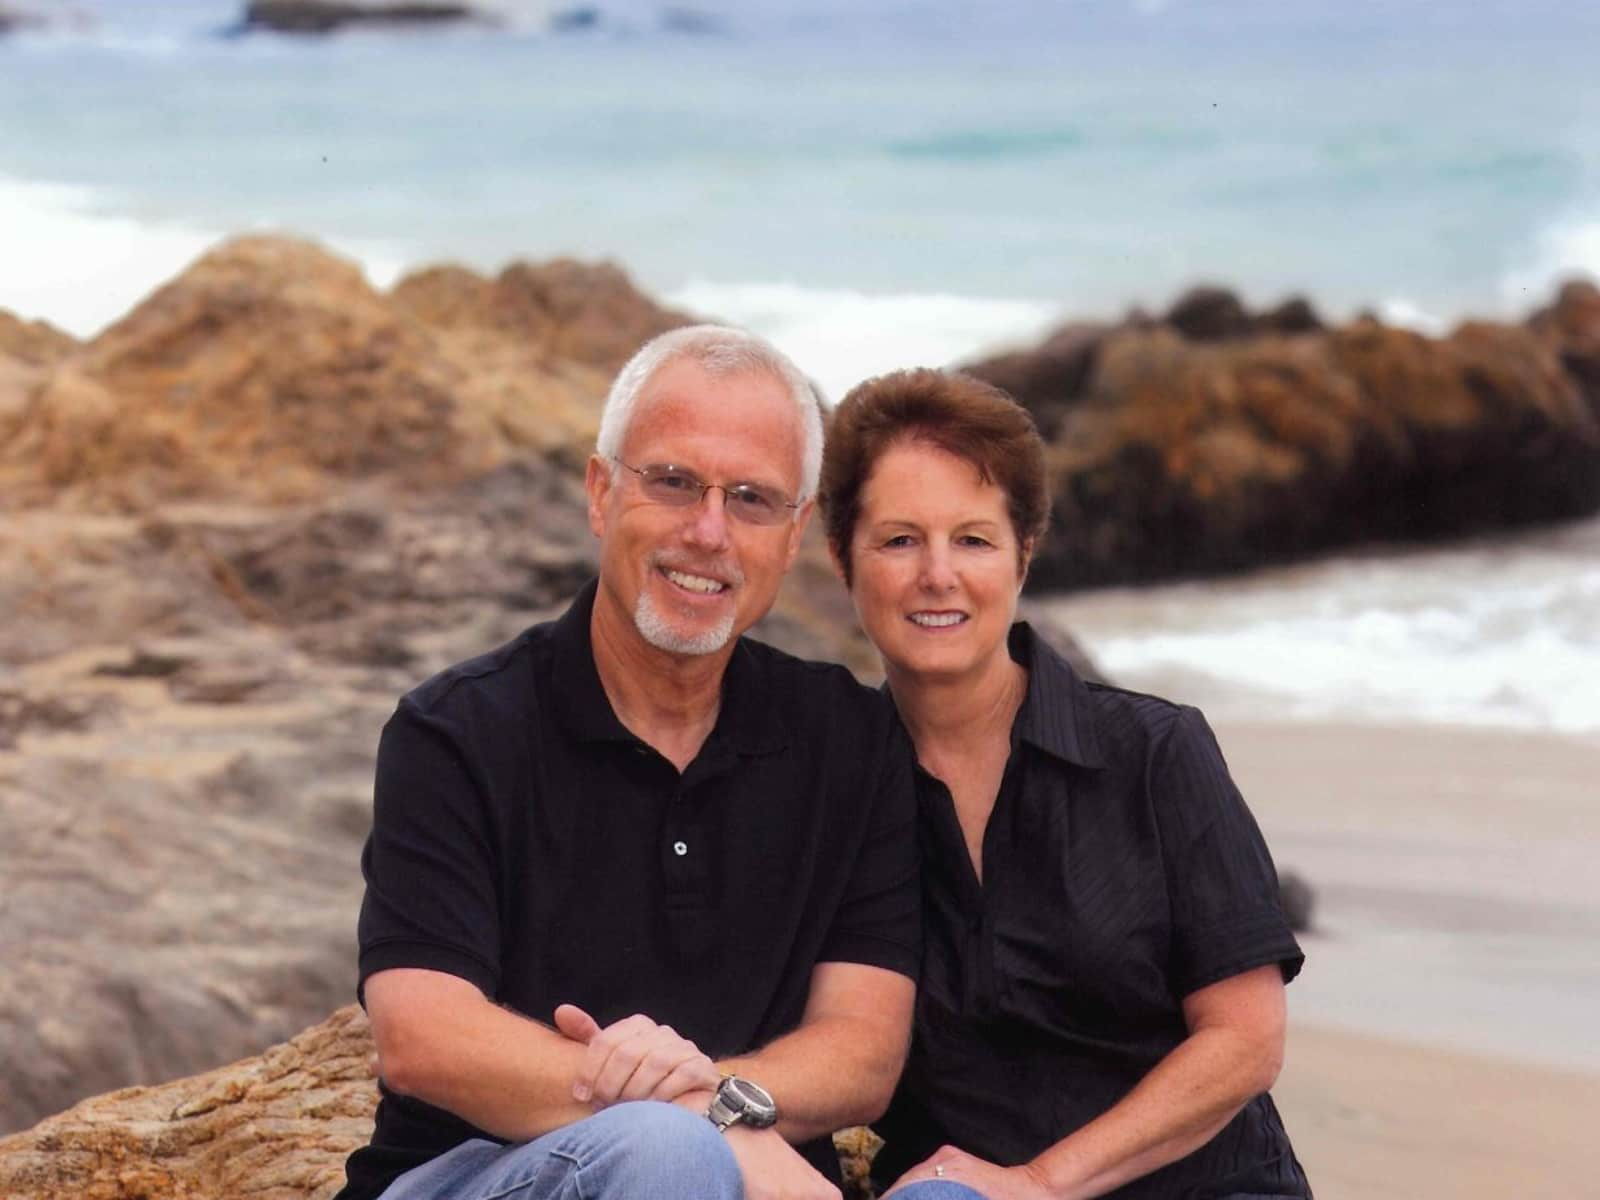 Robin & Terry from Mission Viejo, California, United States